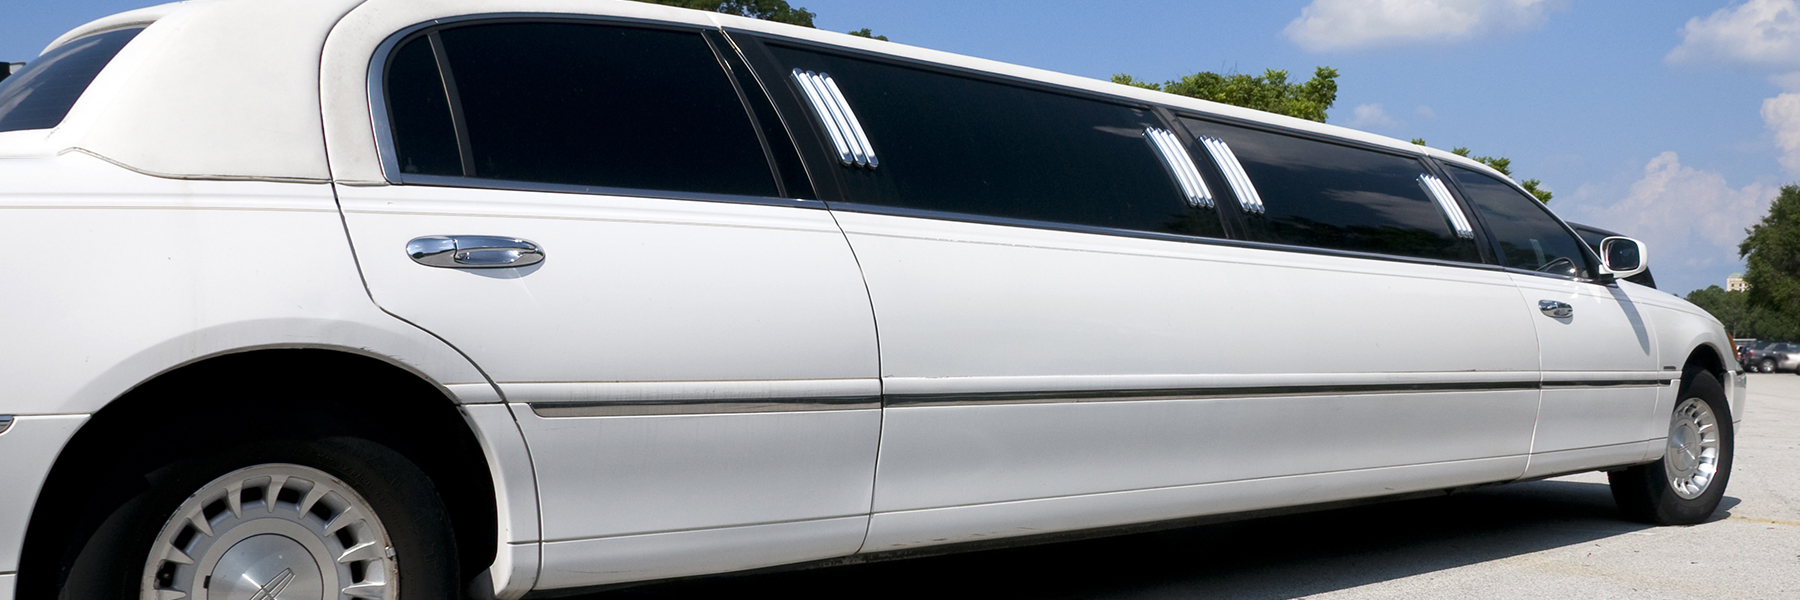 Limo Rental Specials